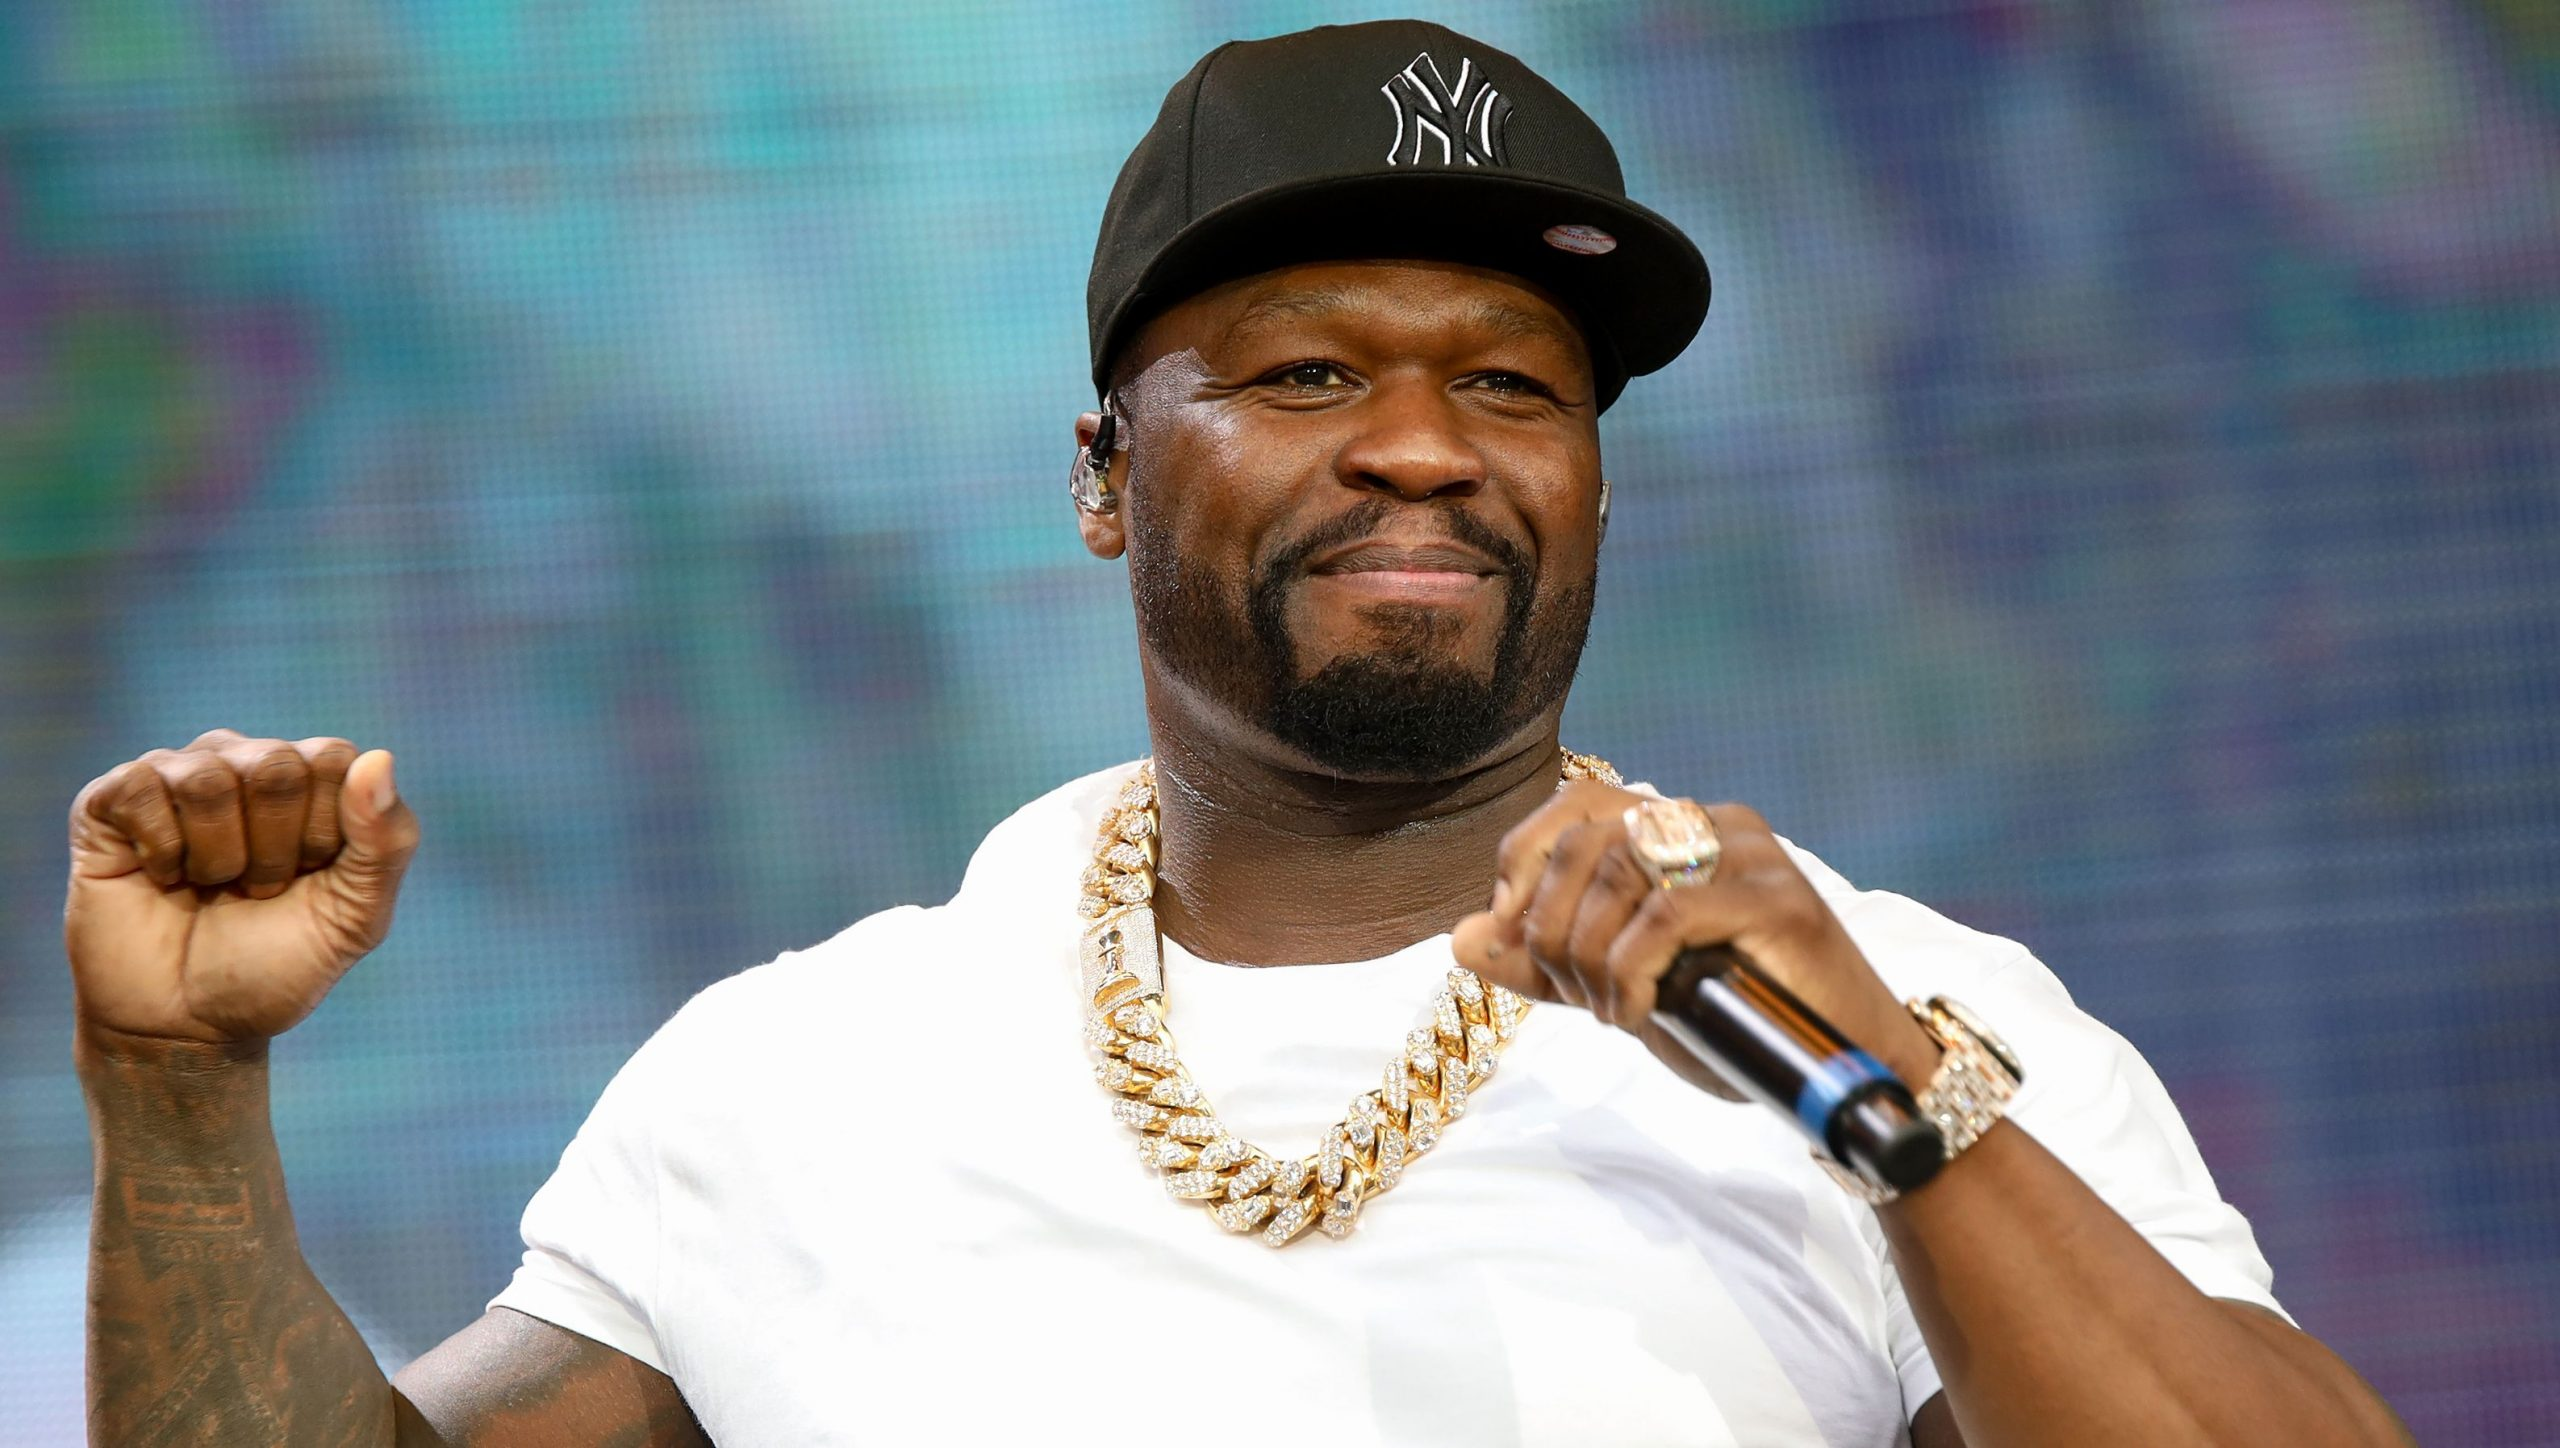 50 Cent, Talib Kweli, Snoop Dogg and Nas: Celebrities Who Could Be Bitcoin Millionaires